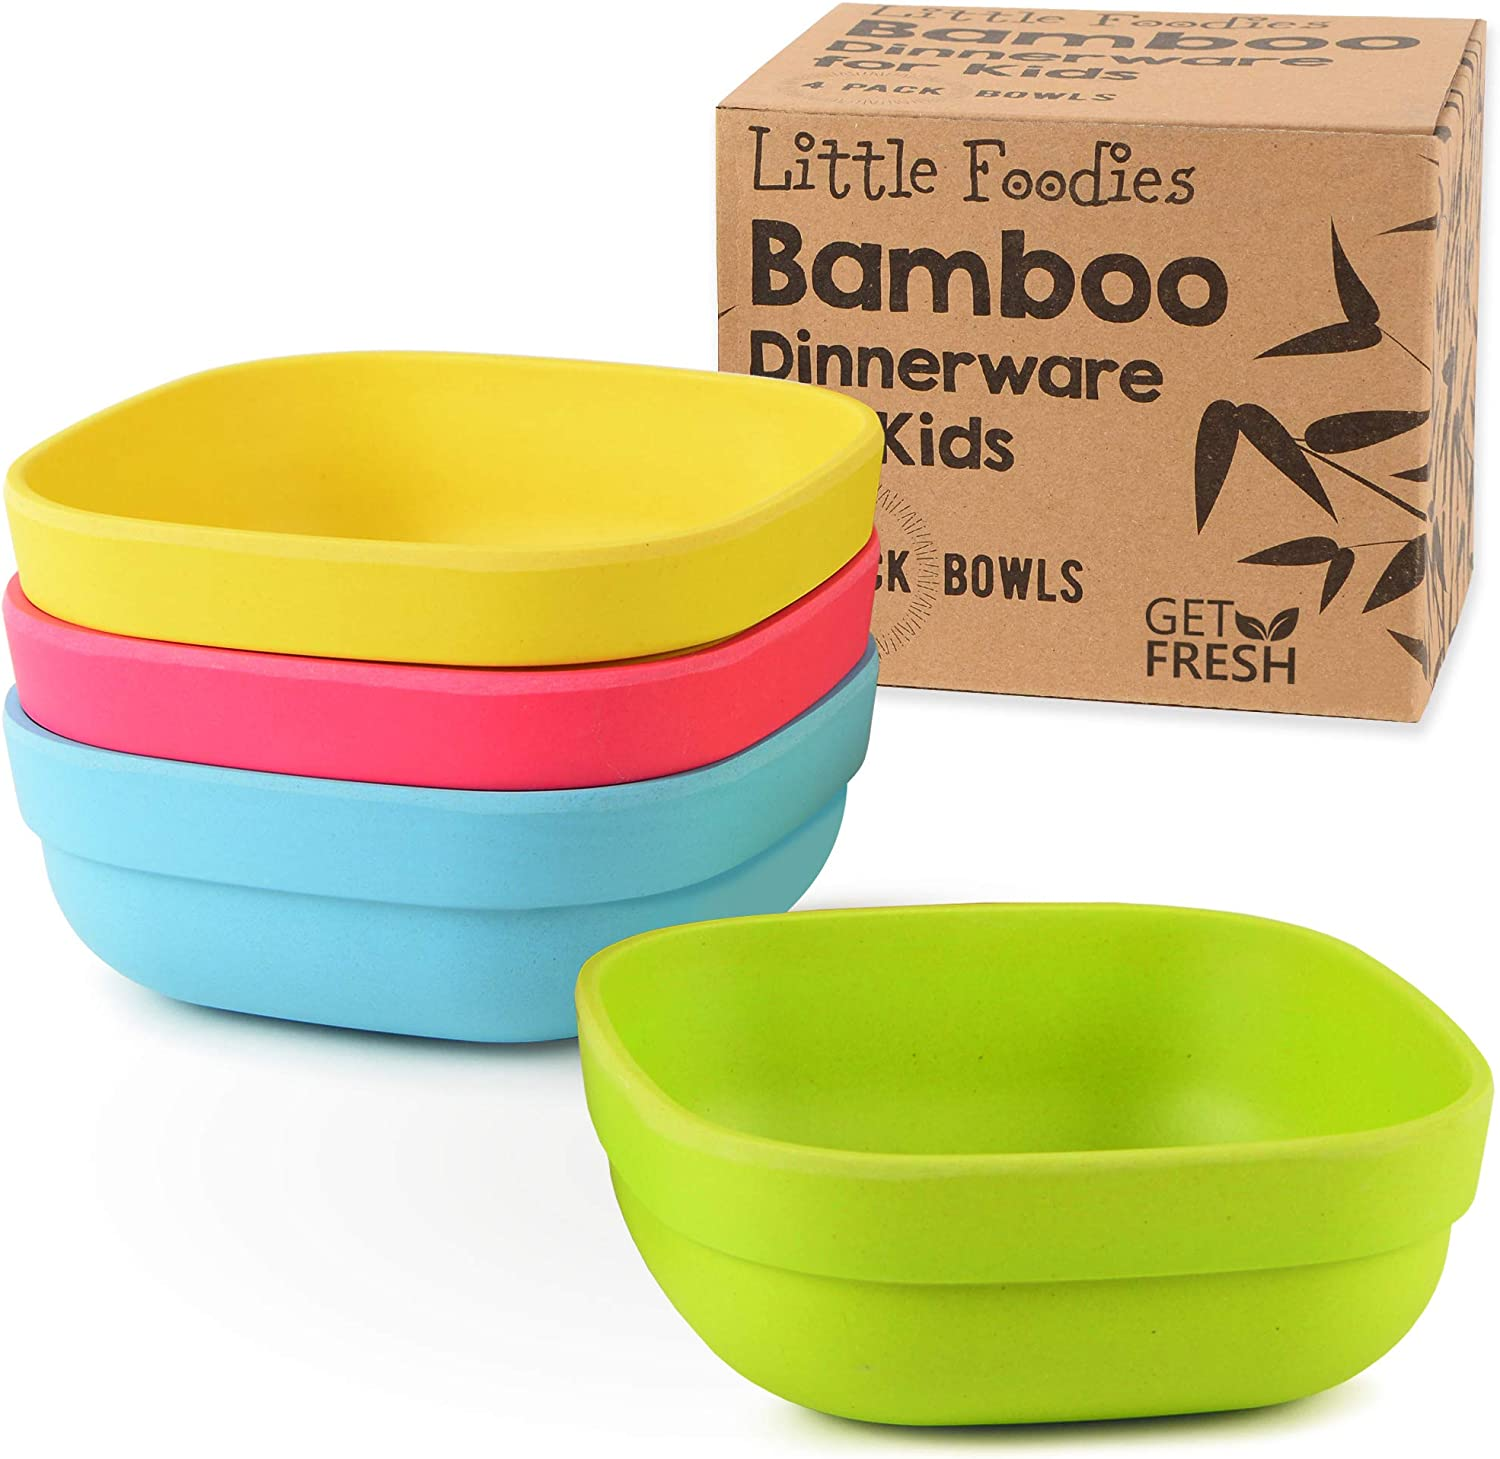 Bamboo Kids Bowls, 4 Pack Set, Stackable Bamboo Dinnerware for Kids, Bamboo Fiber Kids Bowls Set, BPA-Free, Dishwasher Safe and Stackable